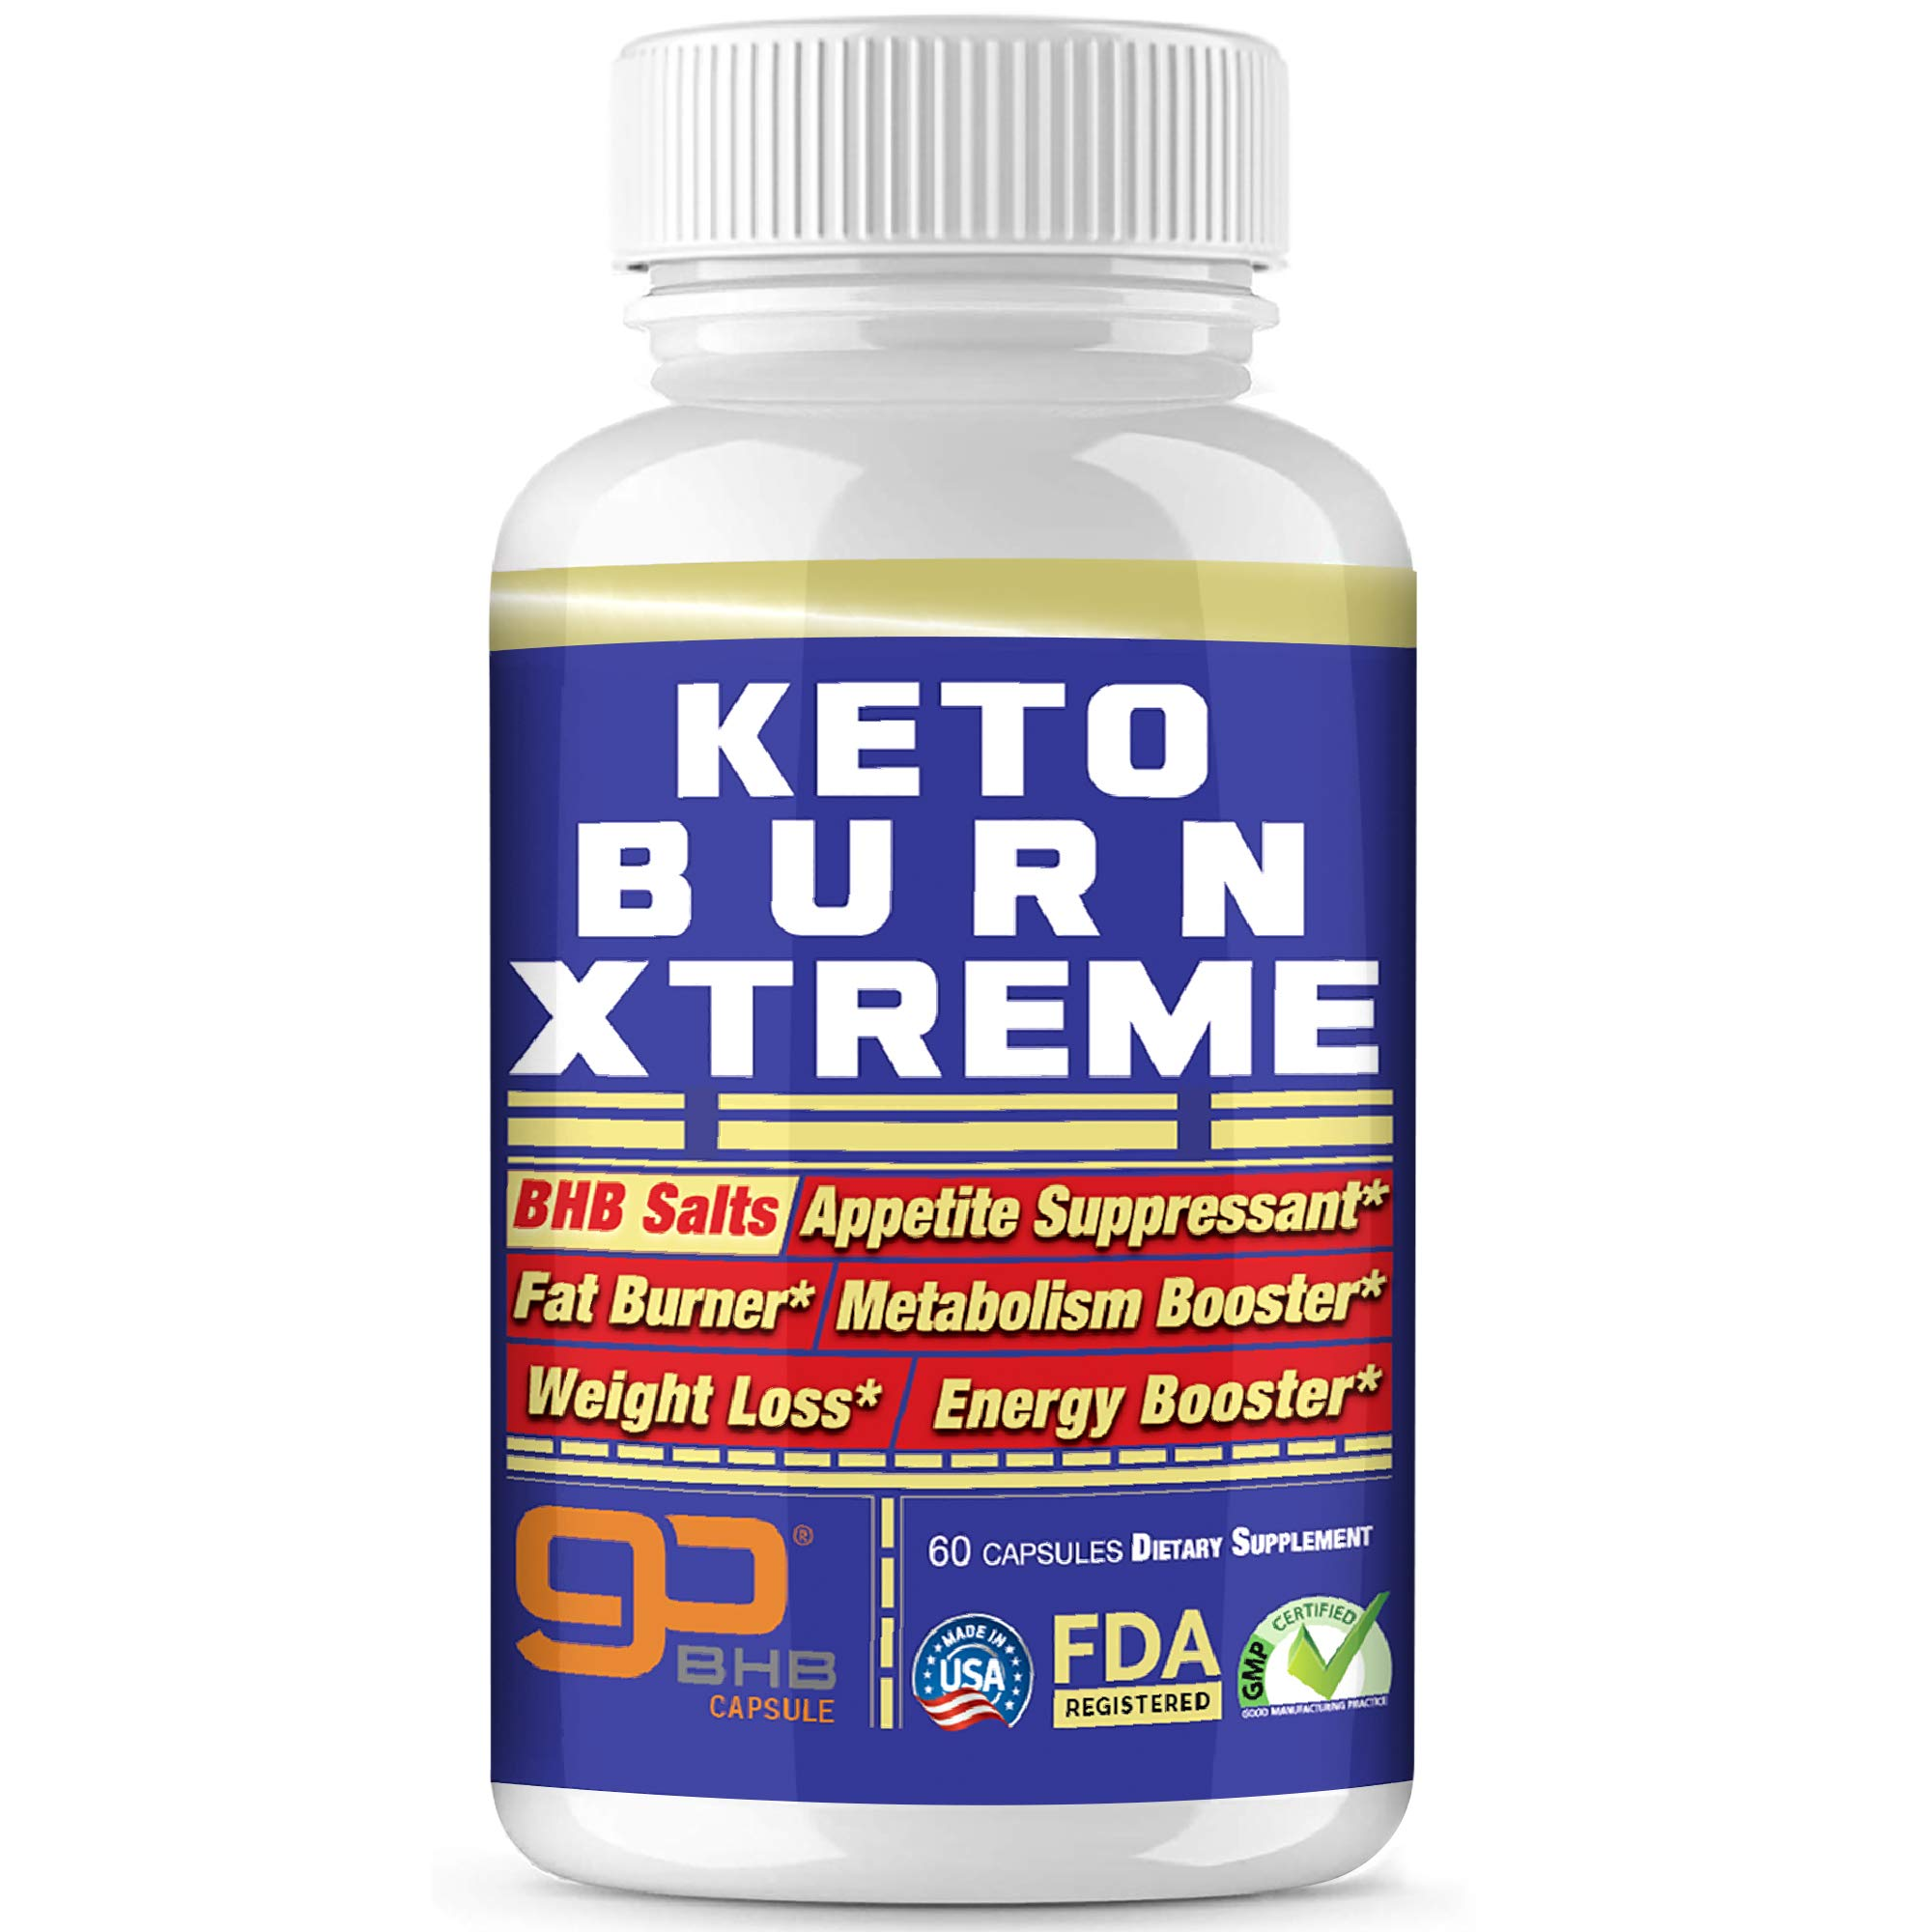 Keto Pills Advanced Xtreme Weight Loss 800 mg Pure BHB Salts Exogenous Ketones Fast Fat Burner Ketosis Boost Supplement Extreme Burn Appetite suppressant Women & Men Capsules + Free Keto Snacks ebook by Keto Wonders